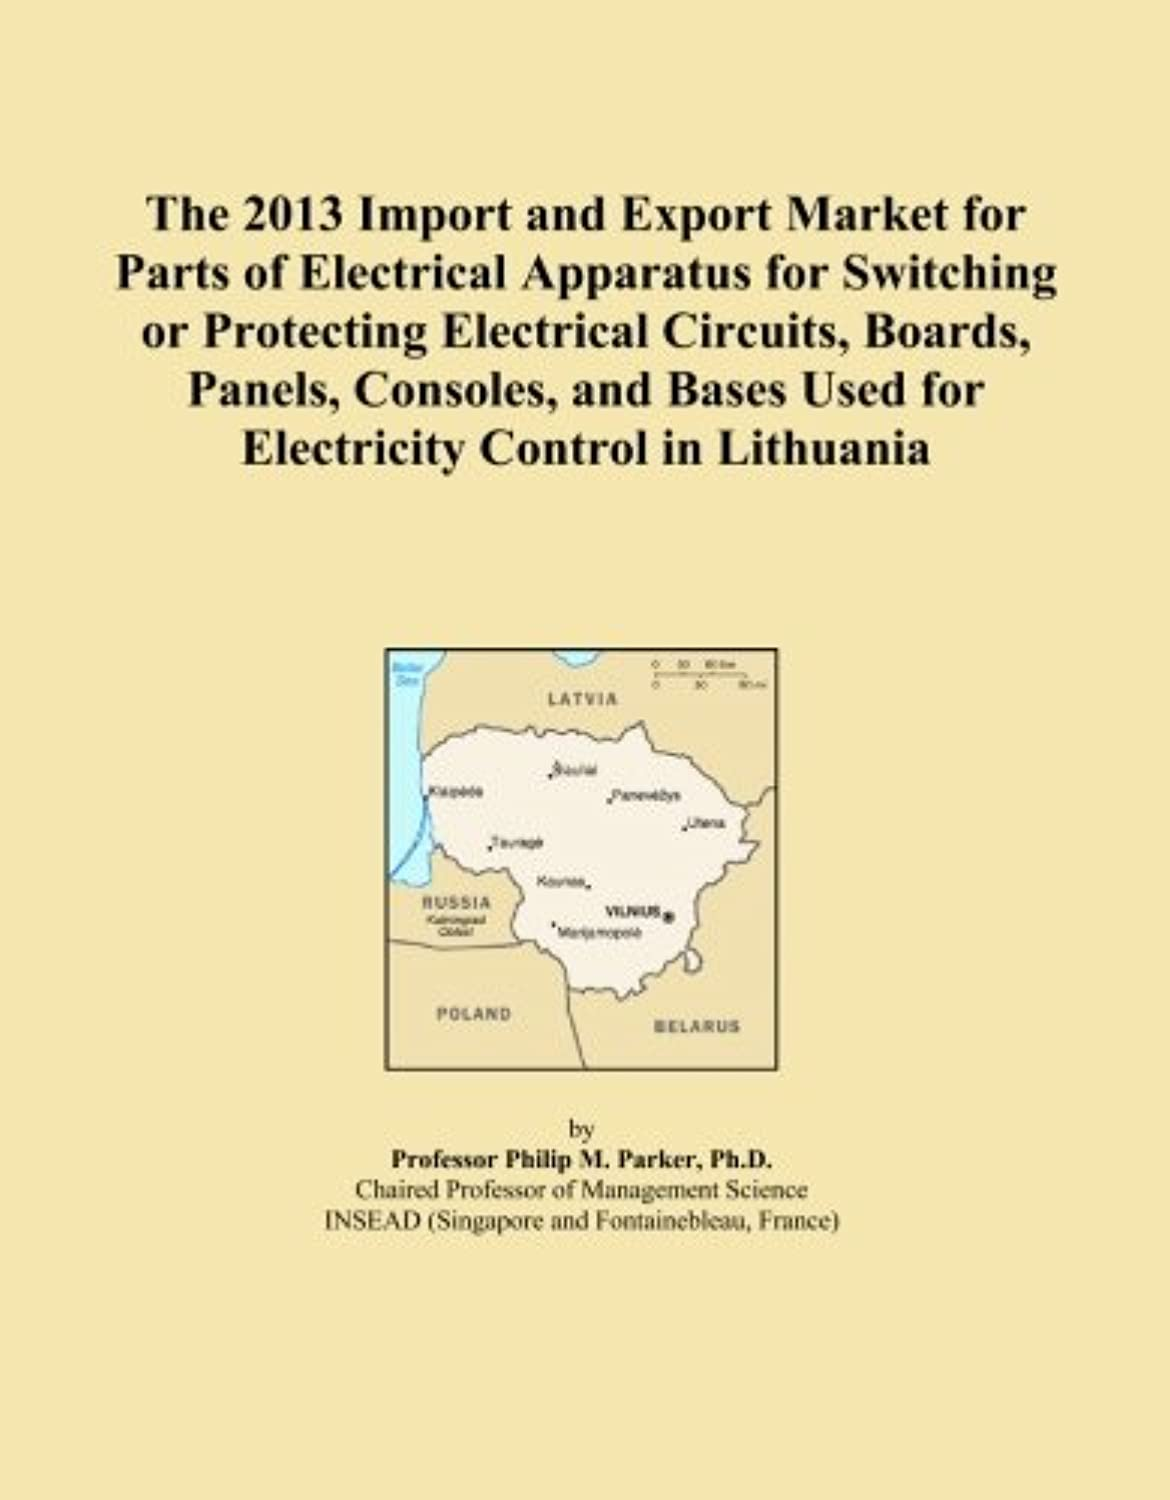 The 2013 Import and Export Market for Parts of Electrical Apparatus for Switching or Protecting Electrical Circuits, Boards, Panels, Consoles, and Bases Used for Electricity Control in Lithuania